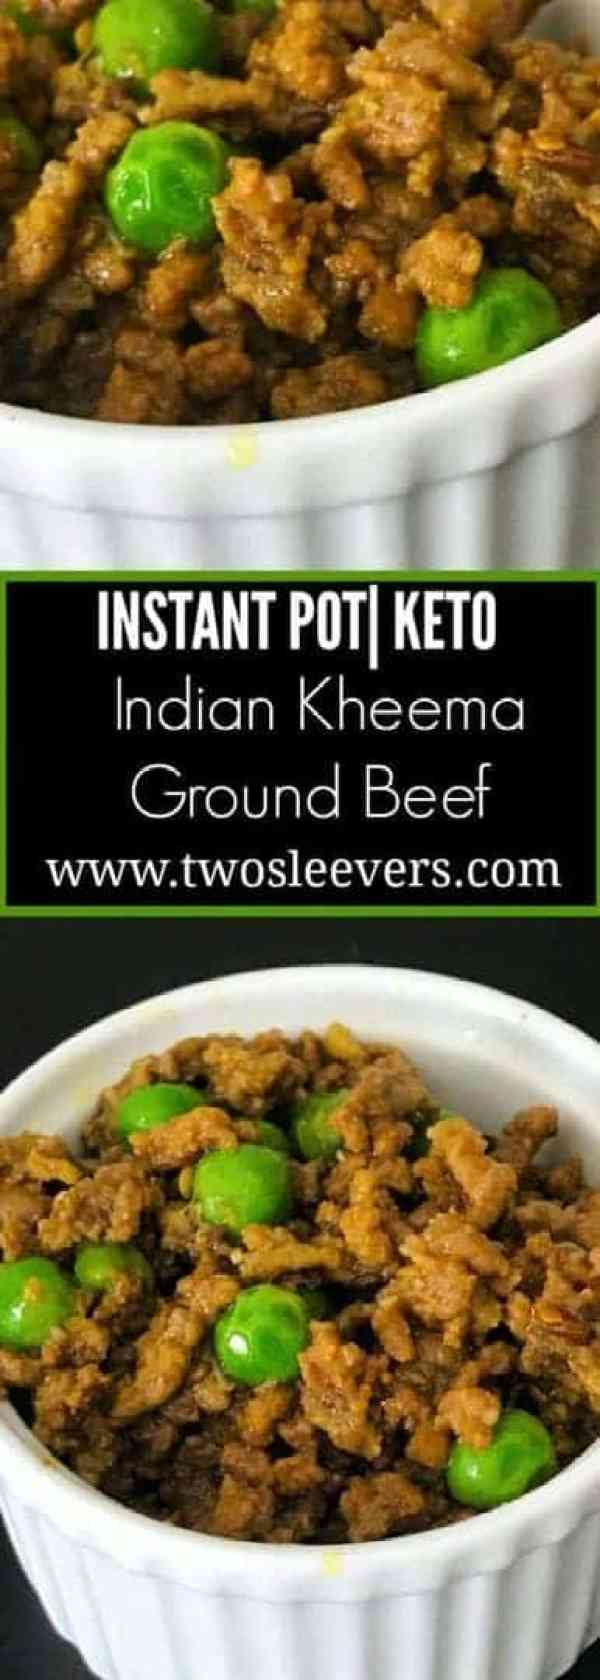 kheema keto Pinterest - Instant Pot Keto Indian Kheema - https://twosleevers.com